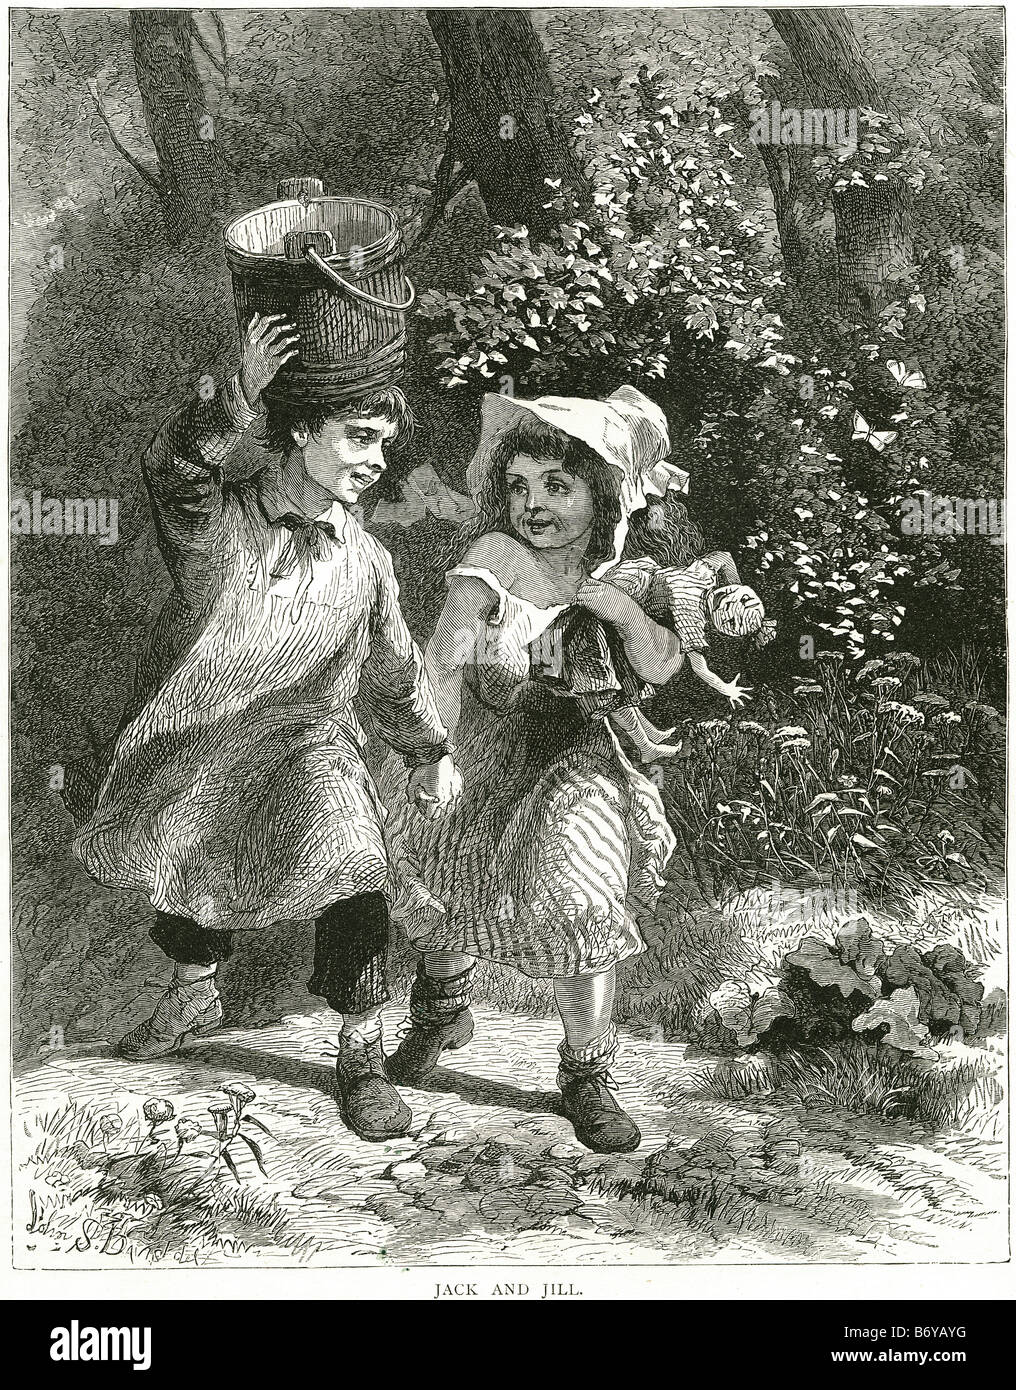 jack and jill classic nursery rhyme hill fetch pail water broke his crown tumbling eighteenth century - Stock Image